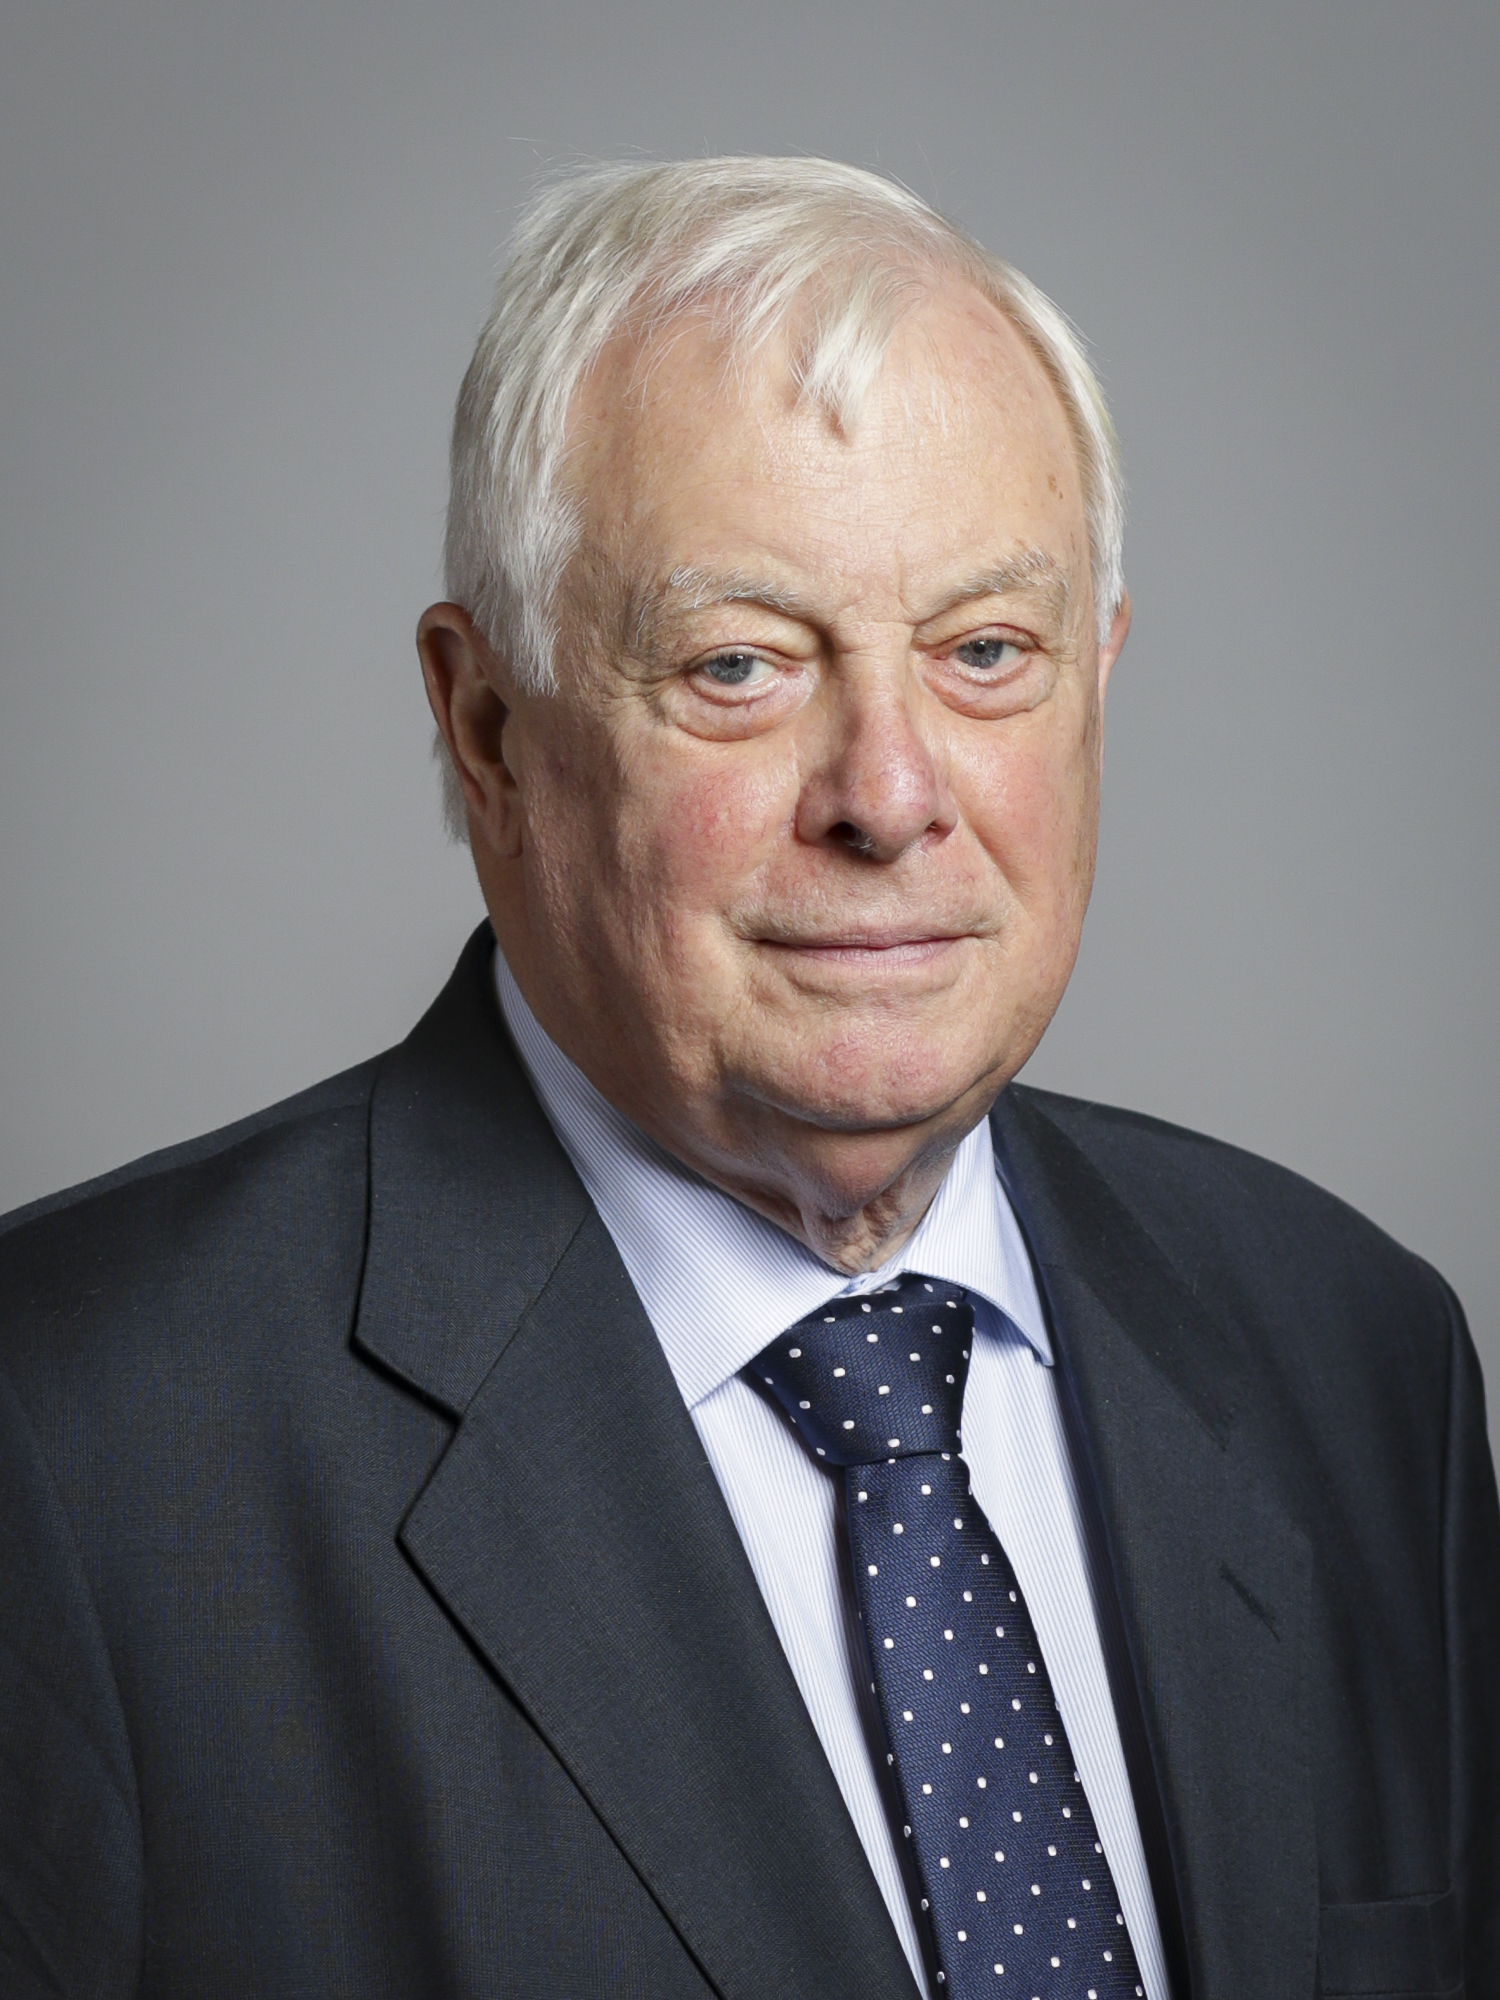 Chris Patten - Wikipedia